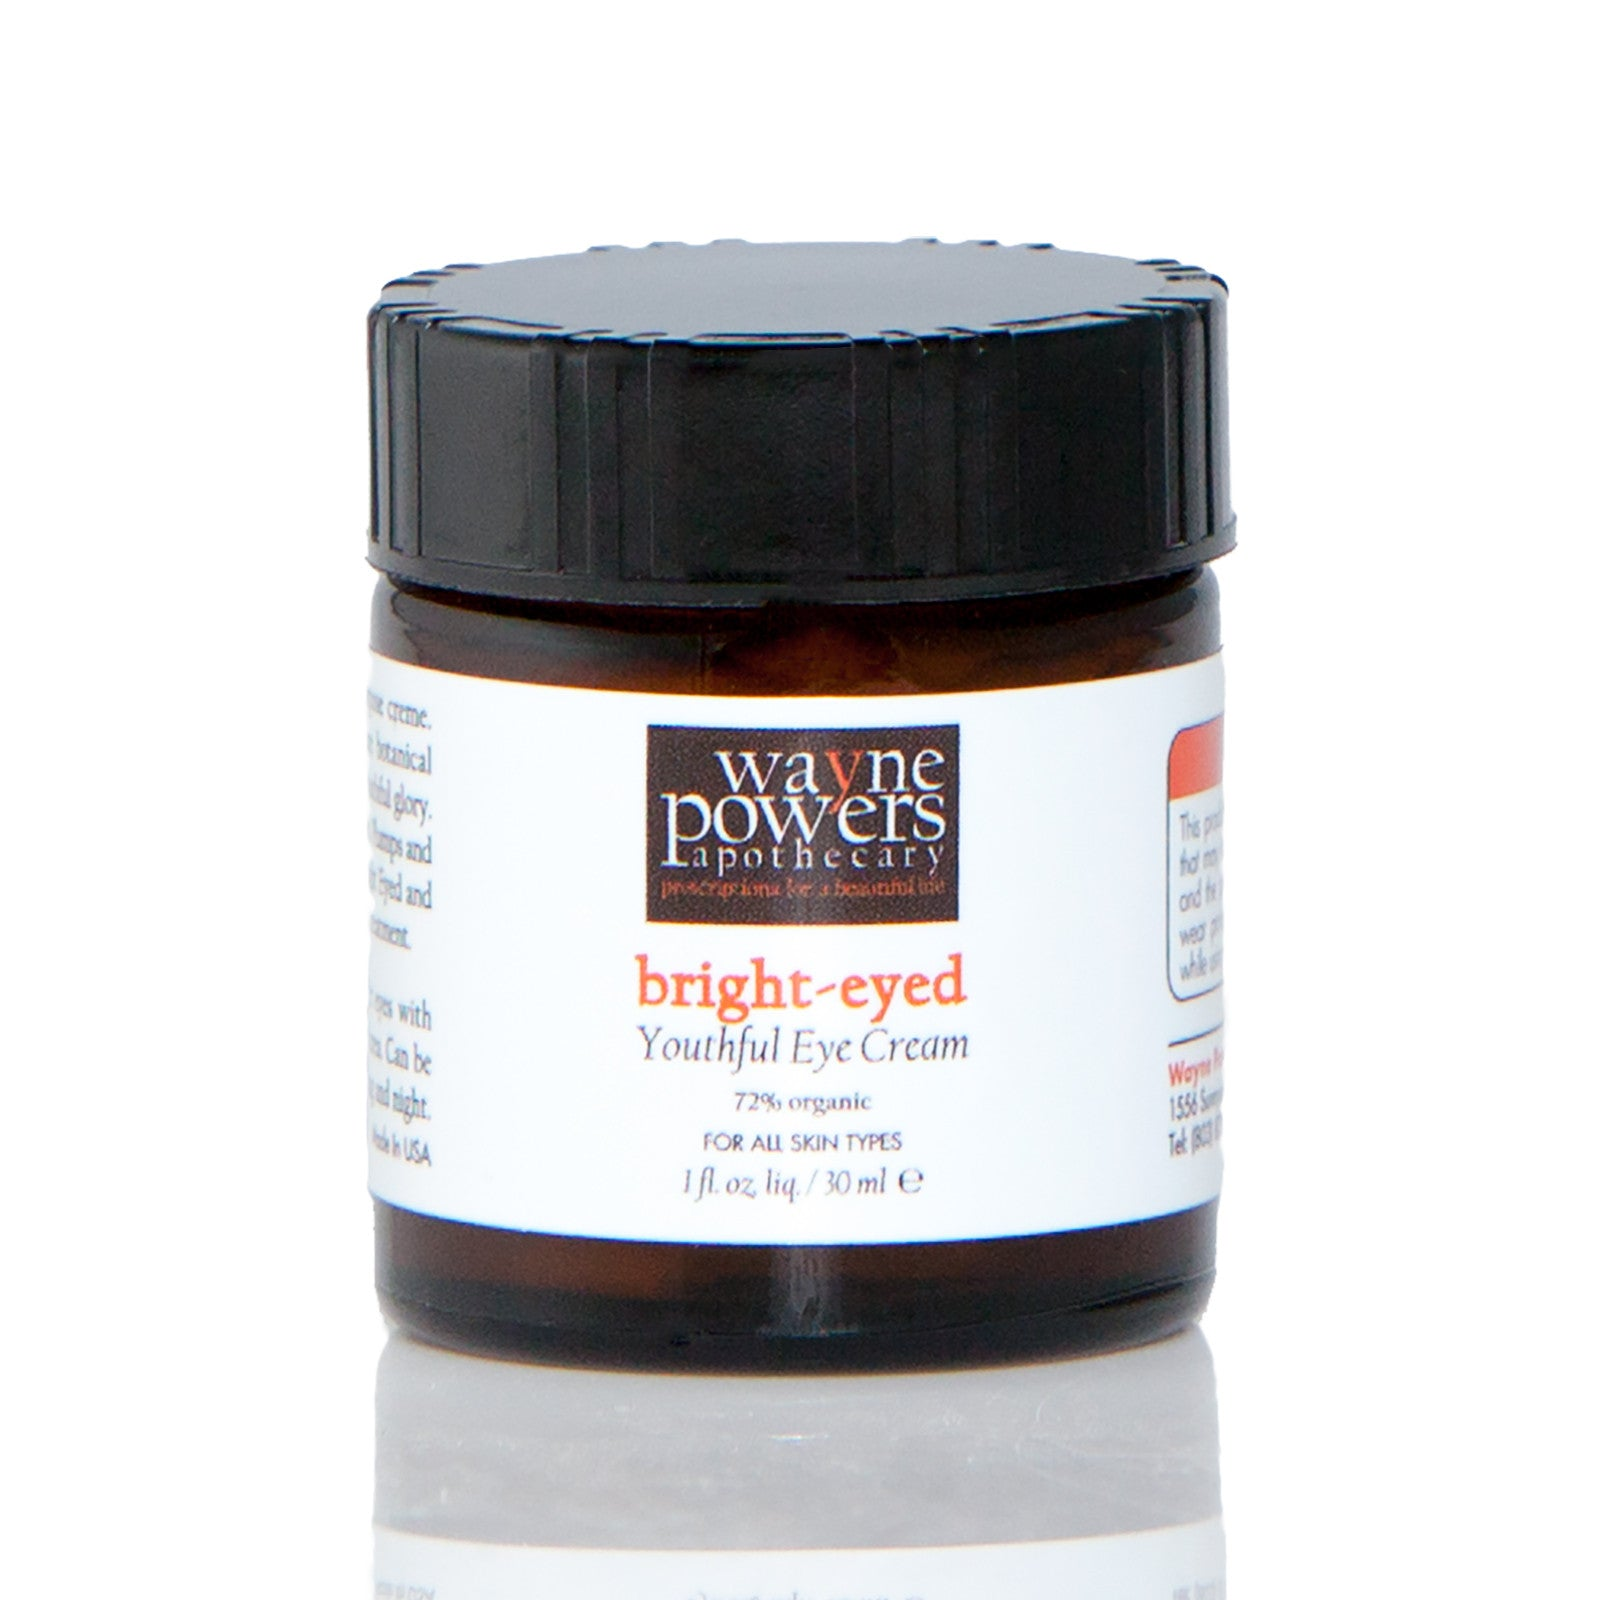 Bright Eye'd Youthful Eye Creme by Wayne Powers Apothecary